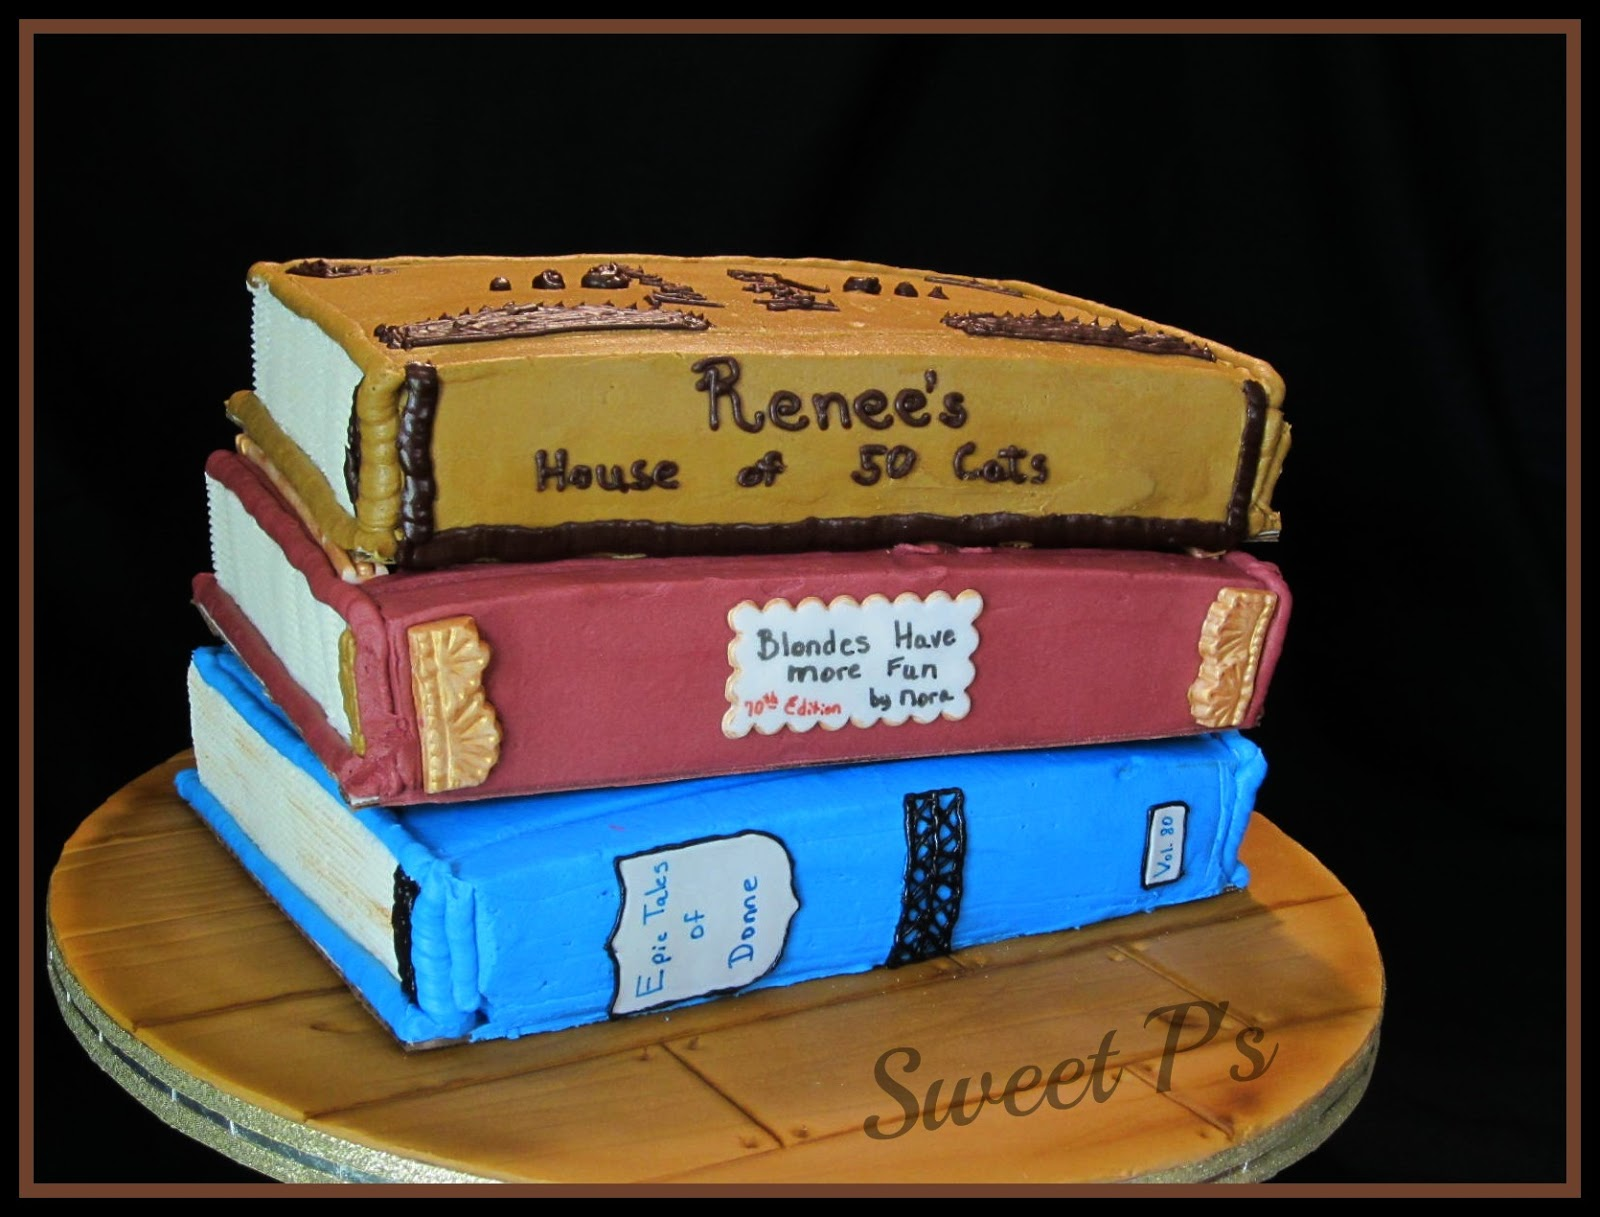 Cake Decorated Like Books : Non-Traditional Wedding Cakes Sweet P s Cake Decorating ...